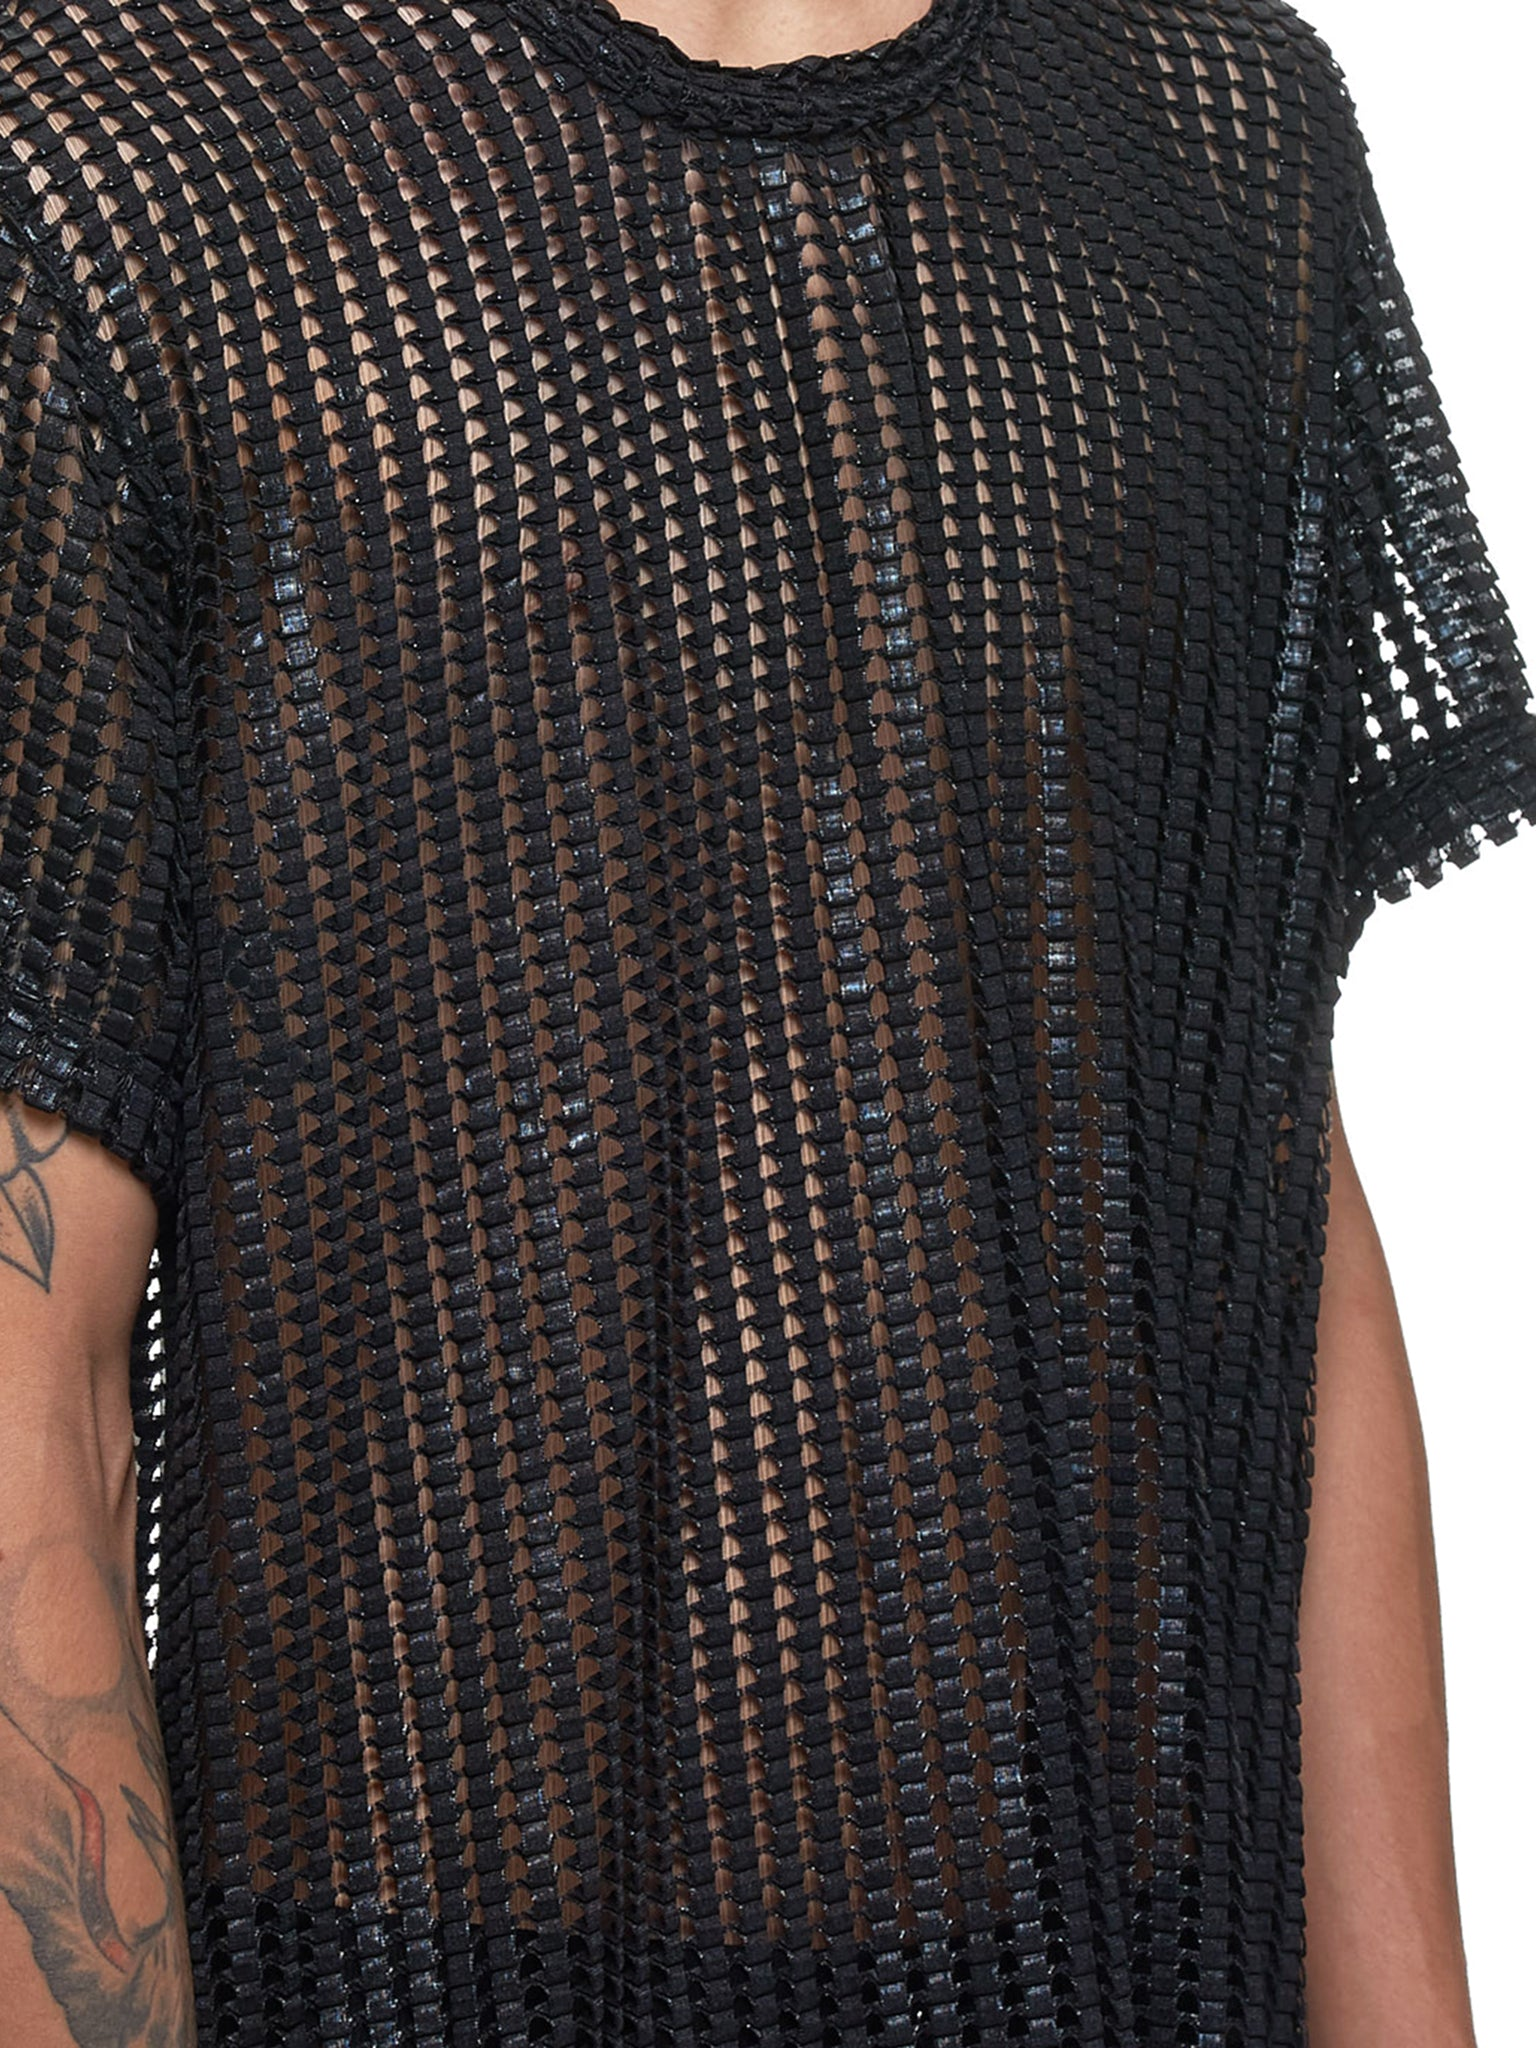 Netted Top (PD-T050-051-BLACK)